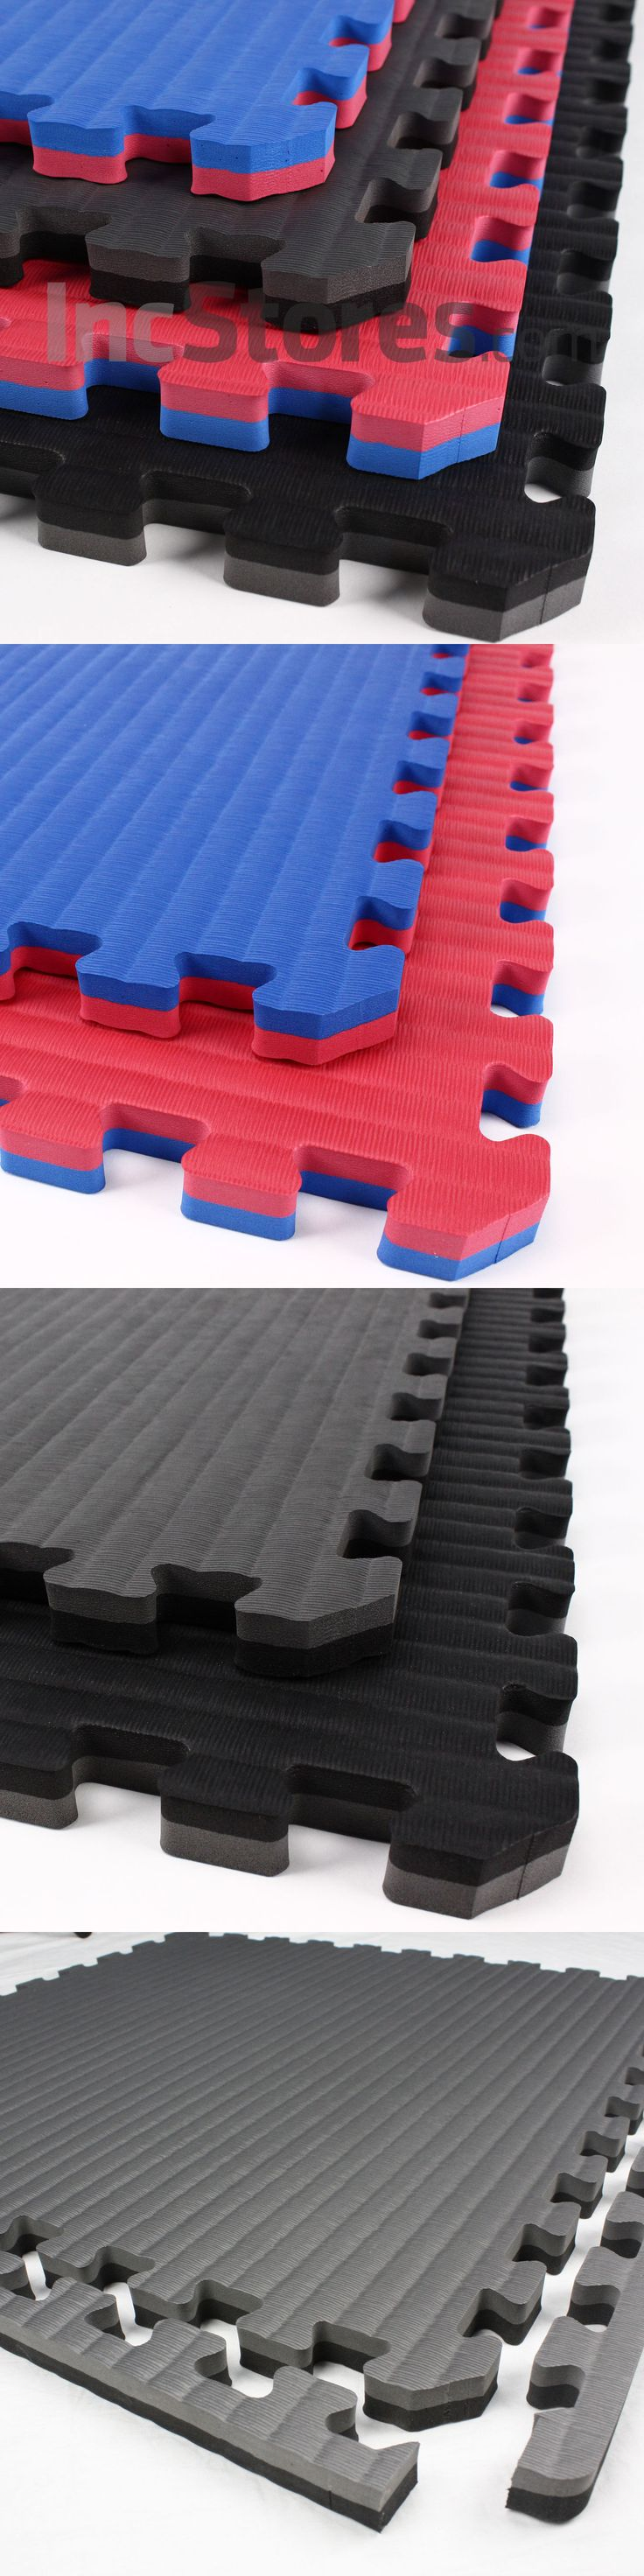 Exercise Mats 44079: Incstores 24Sqft Tatami Tiles 2Ft X 2Ft Portable Martial Arts Mats (6 Tiles) -> BUY IT NOW ONLY: $45.14 on eBay!